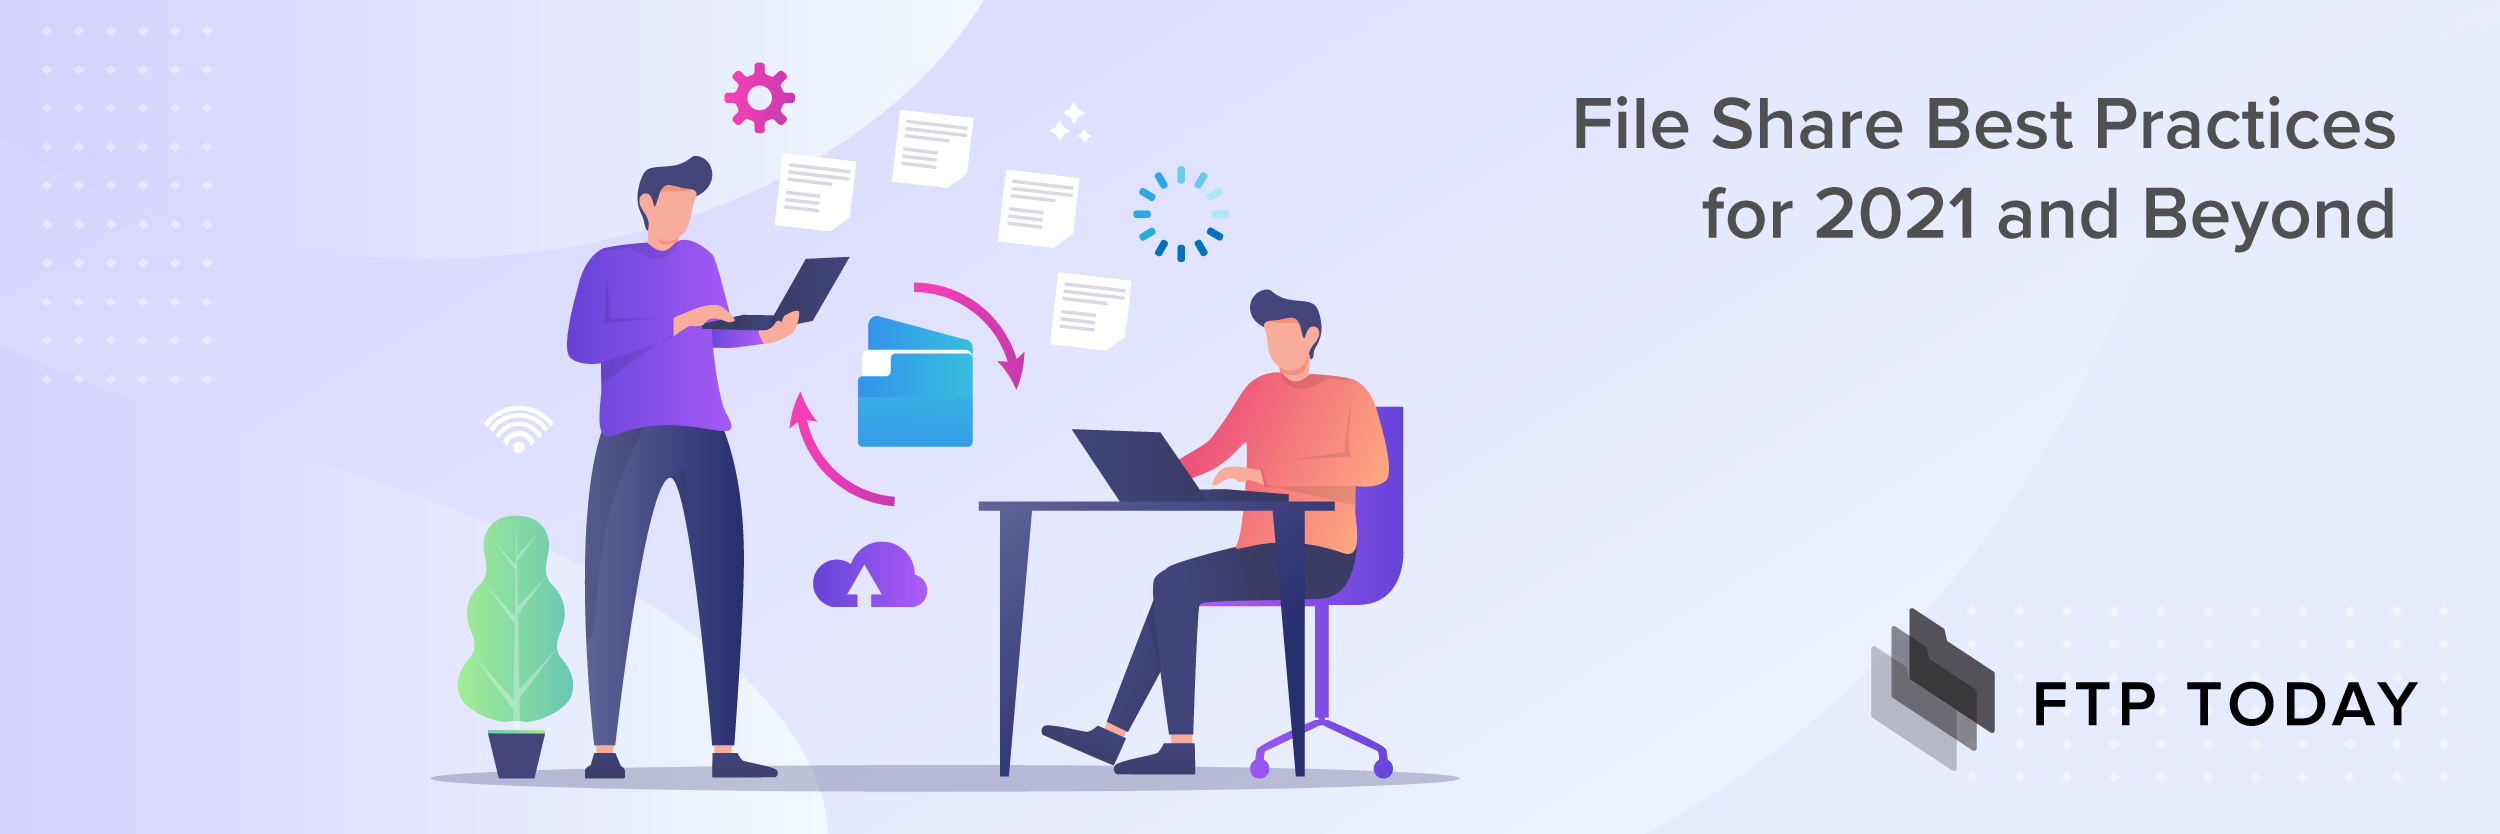 File Share Best Practices for 2021 and Beyond